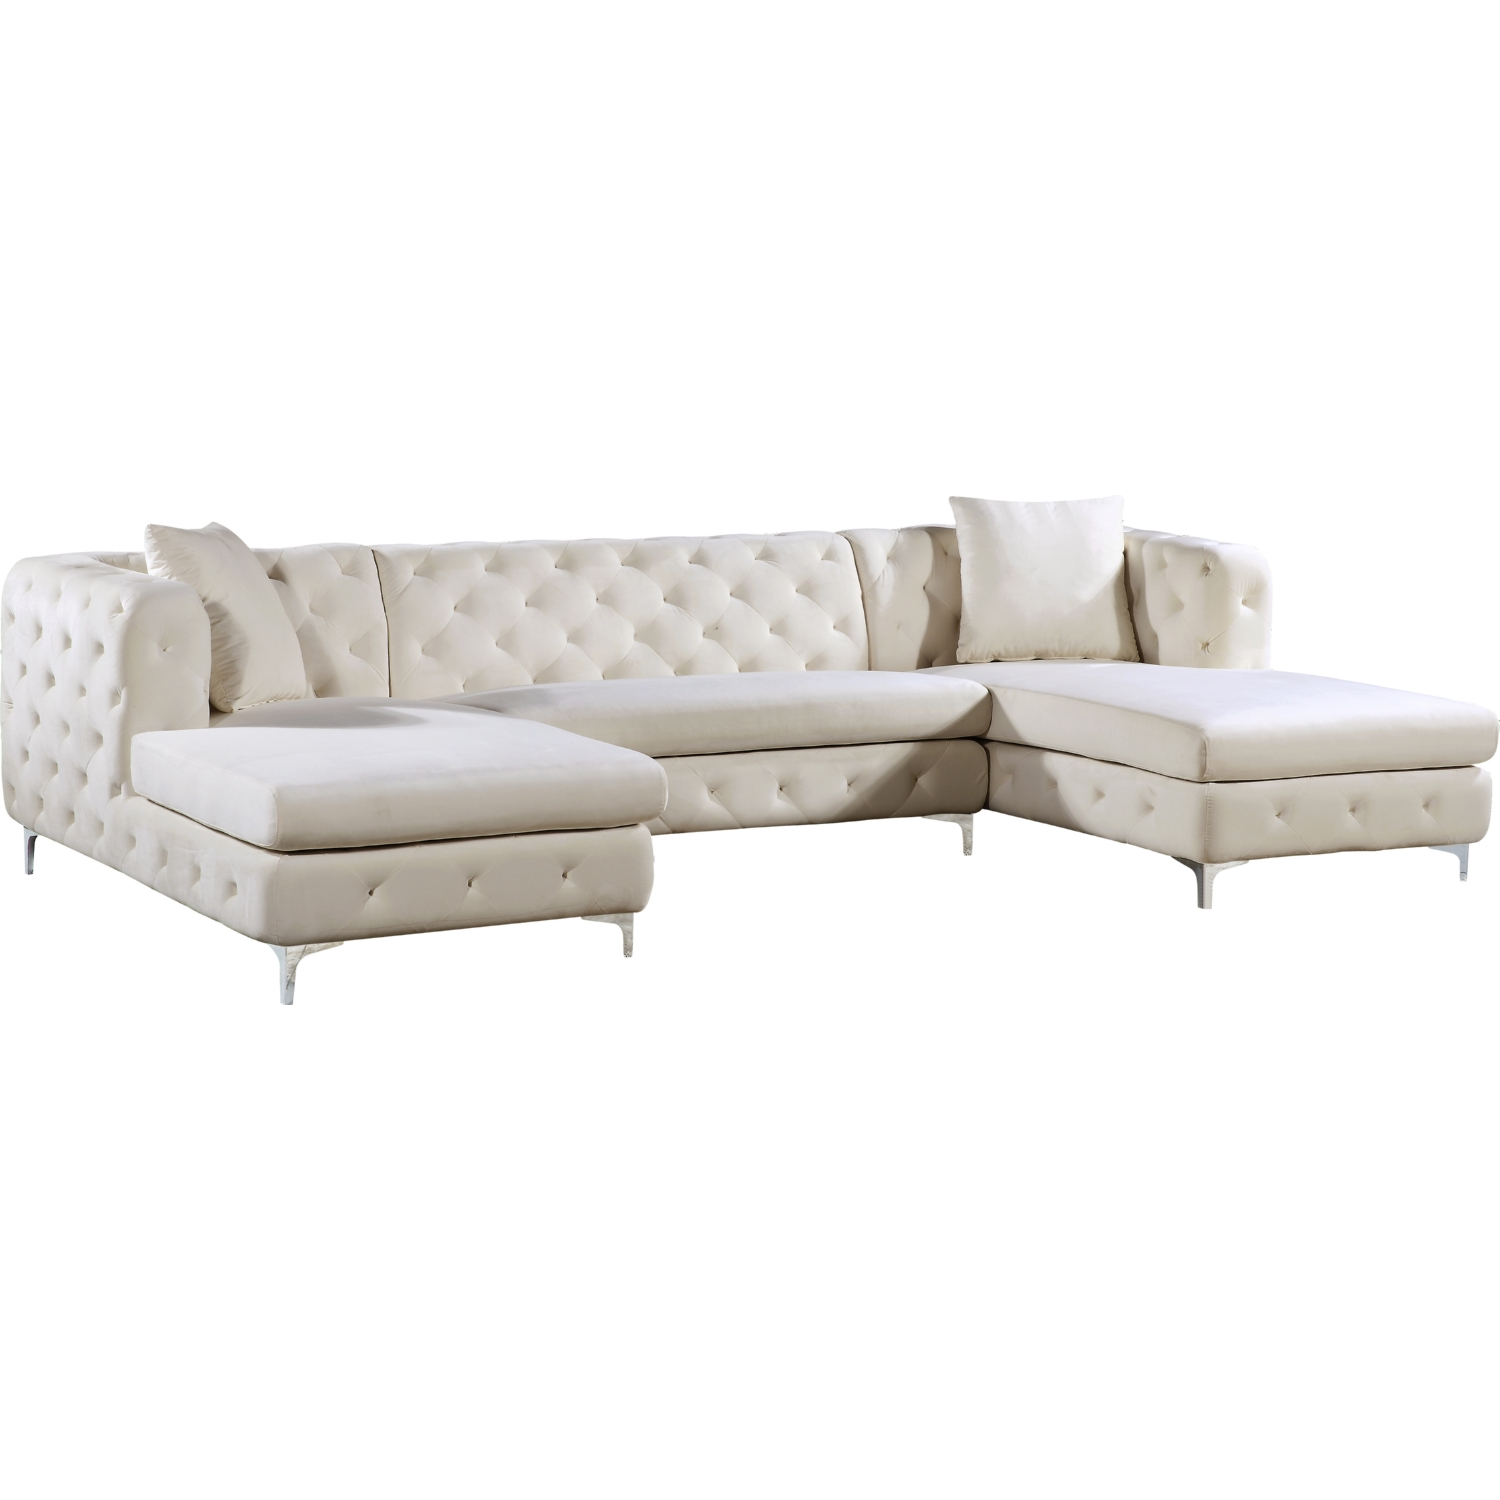 Meridian 664Cream-Sectional Gail 3 Piece Double Chaise ...